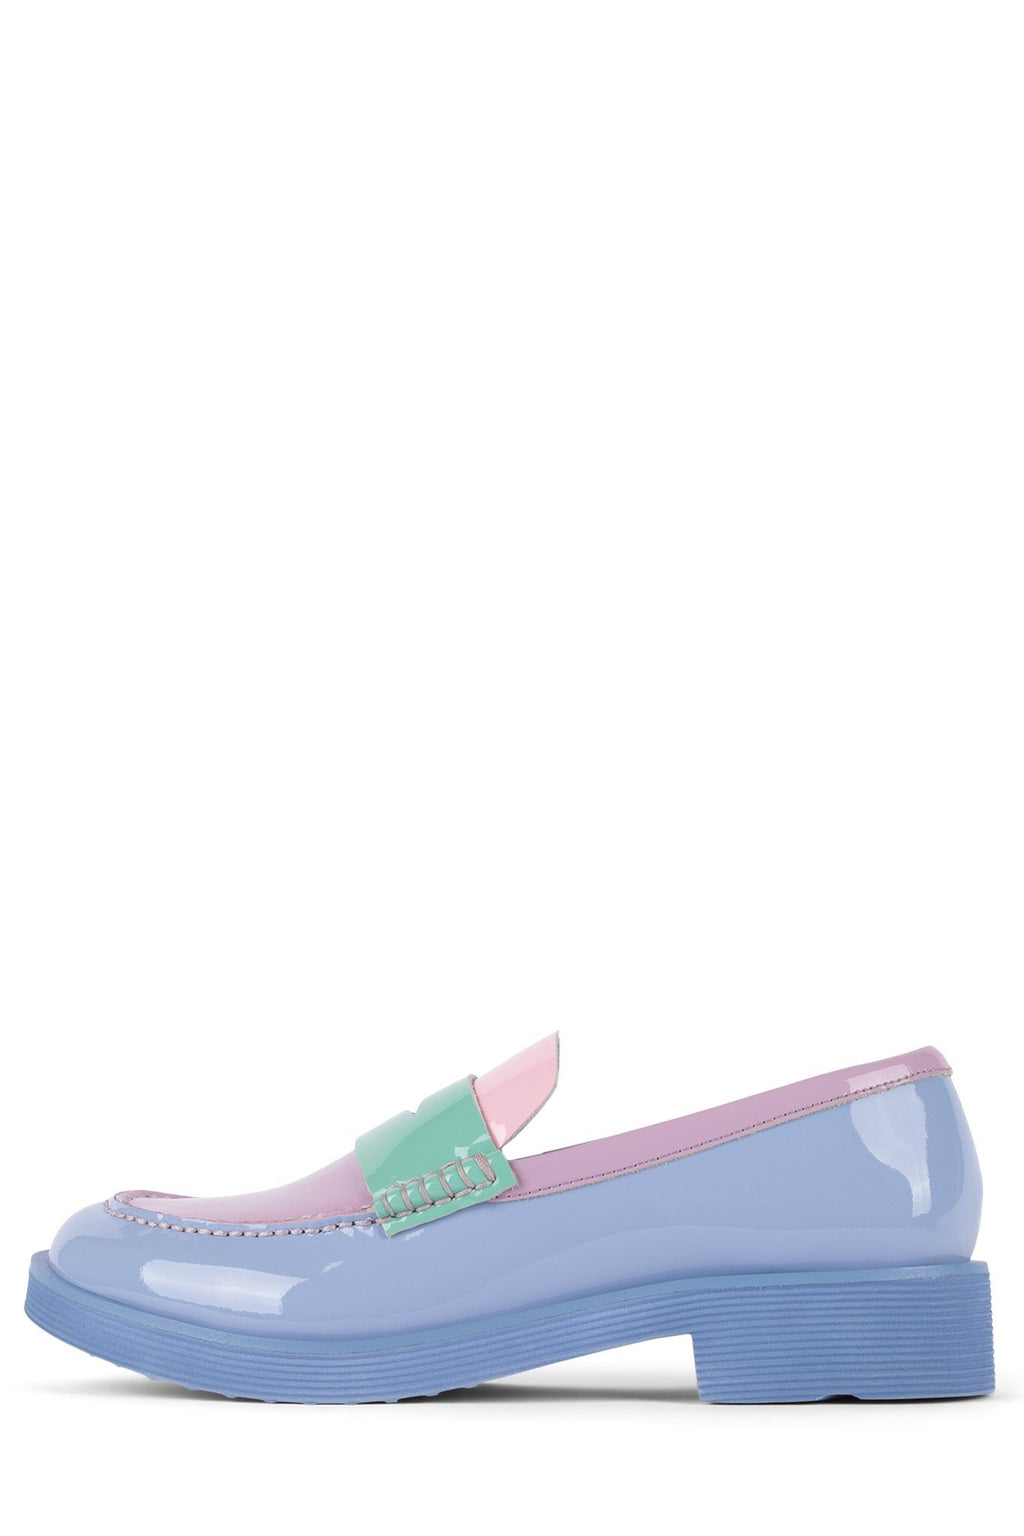 LENNA YYH Periwinkle Patent Multi 6